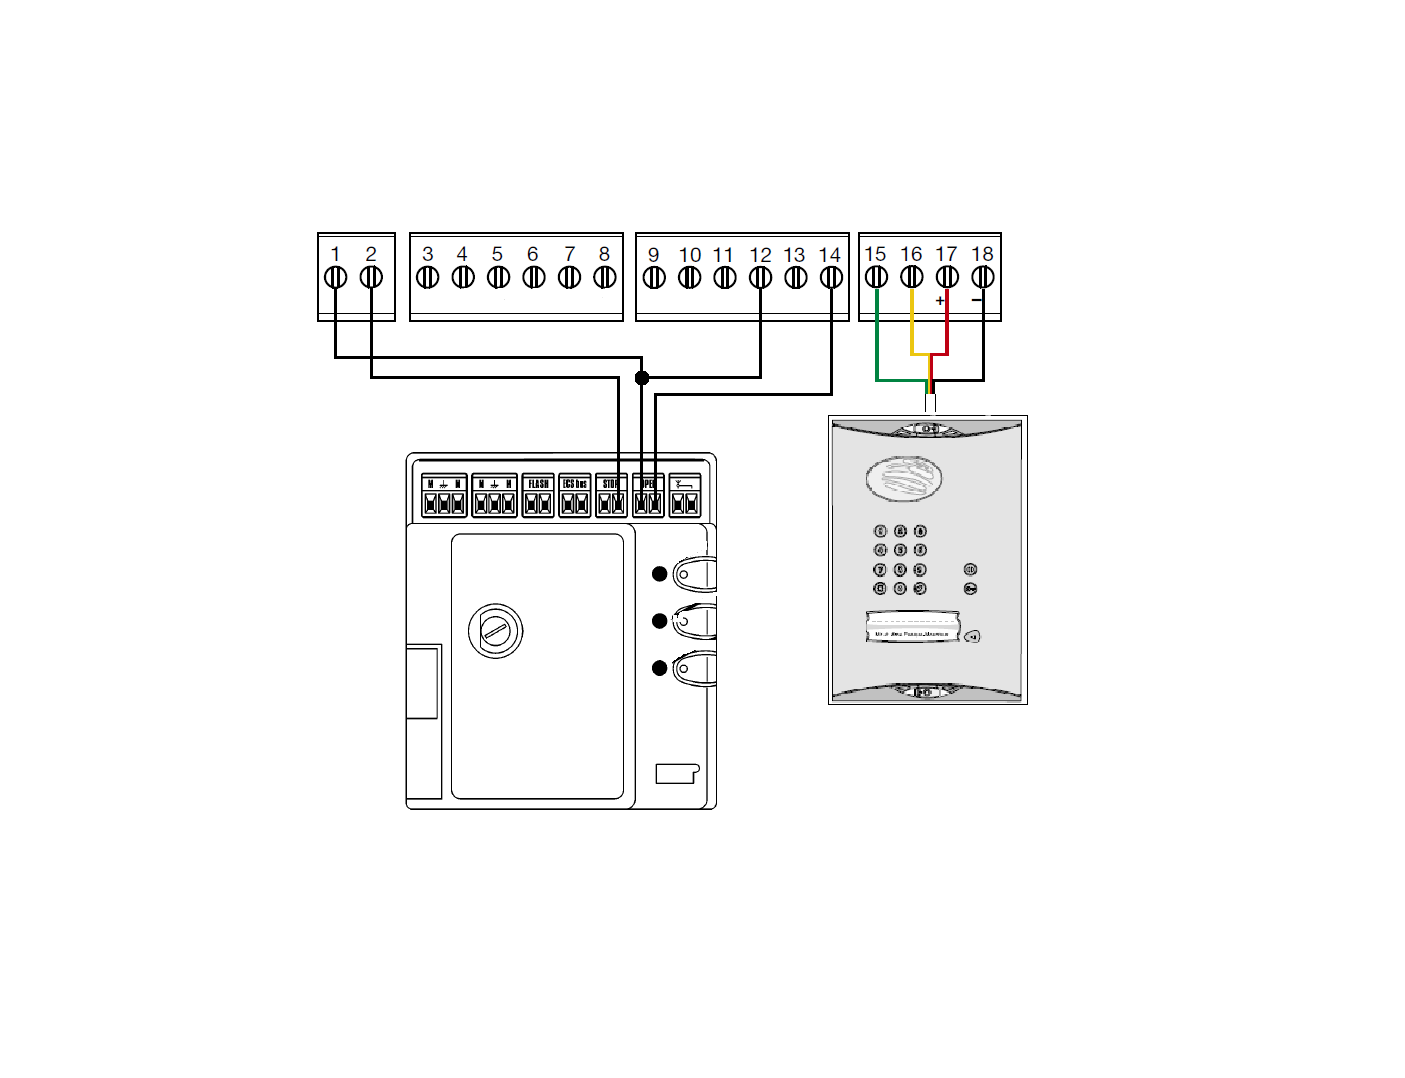 Daitem to Mhouse Simplified Wiring Diagram diagrams 10581298 videx wiring diagram videx wiring diagram all videx door entry systems wiring diagram at couponss.co